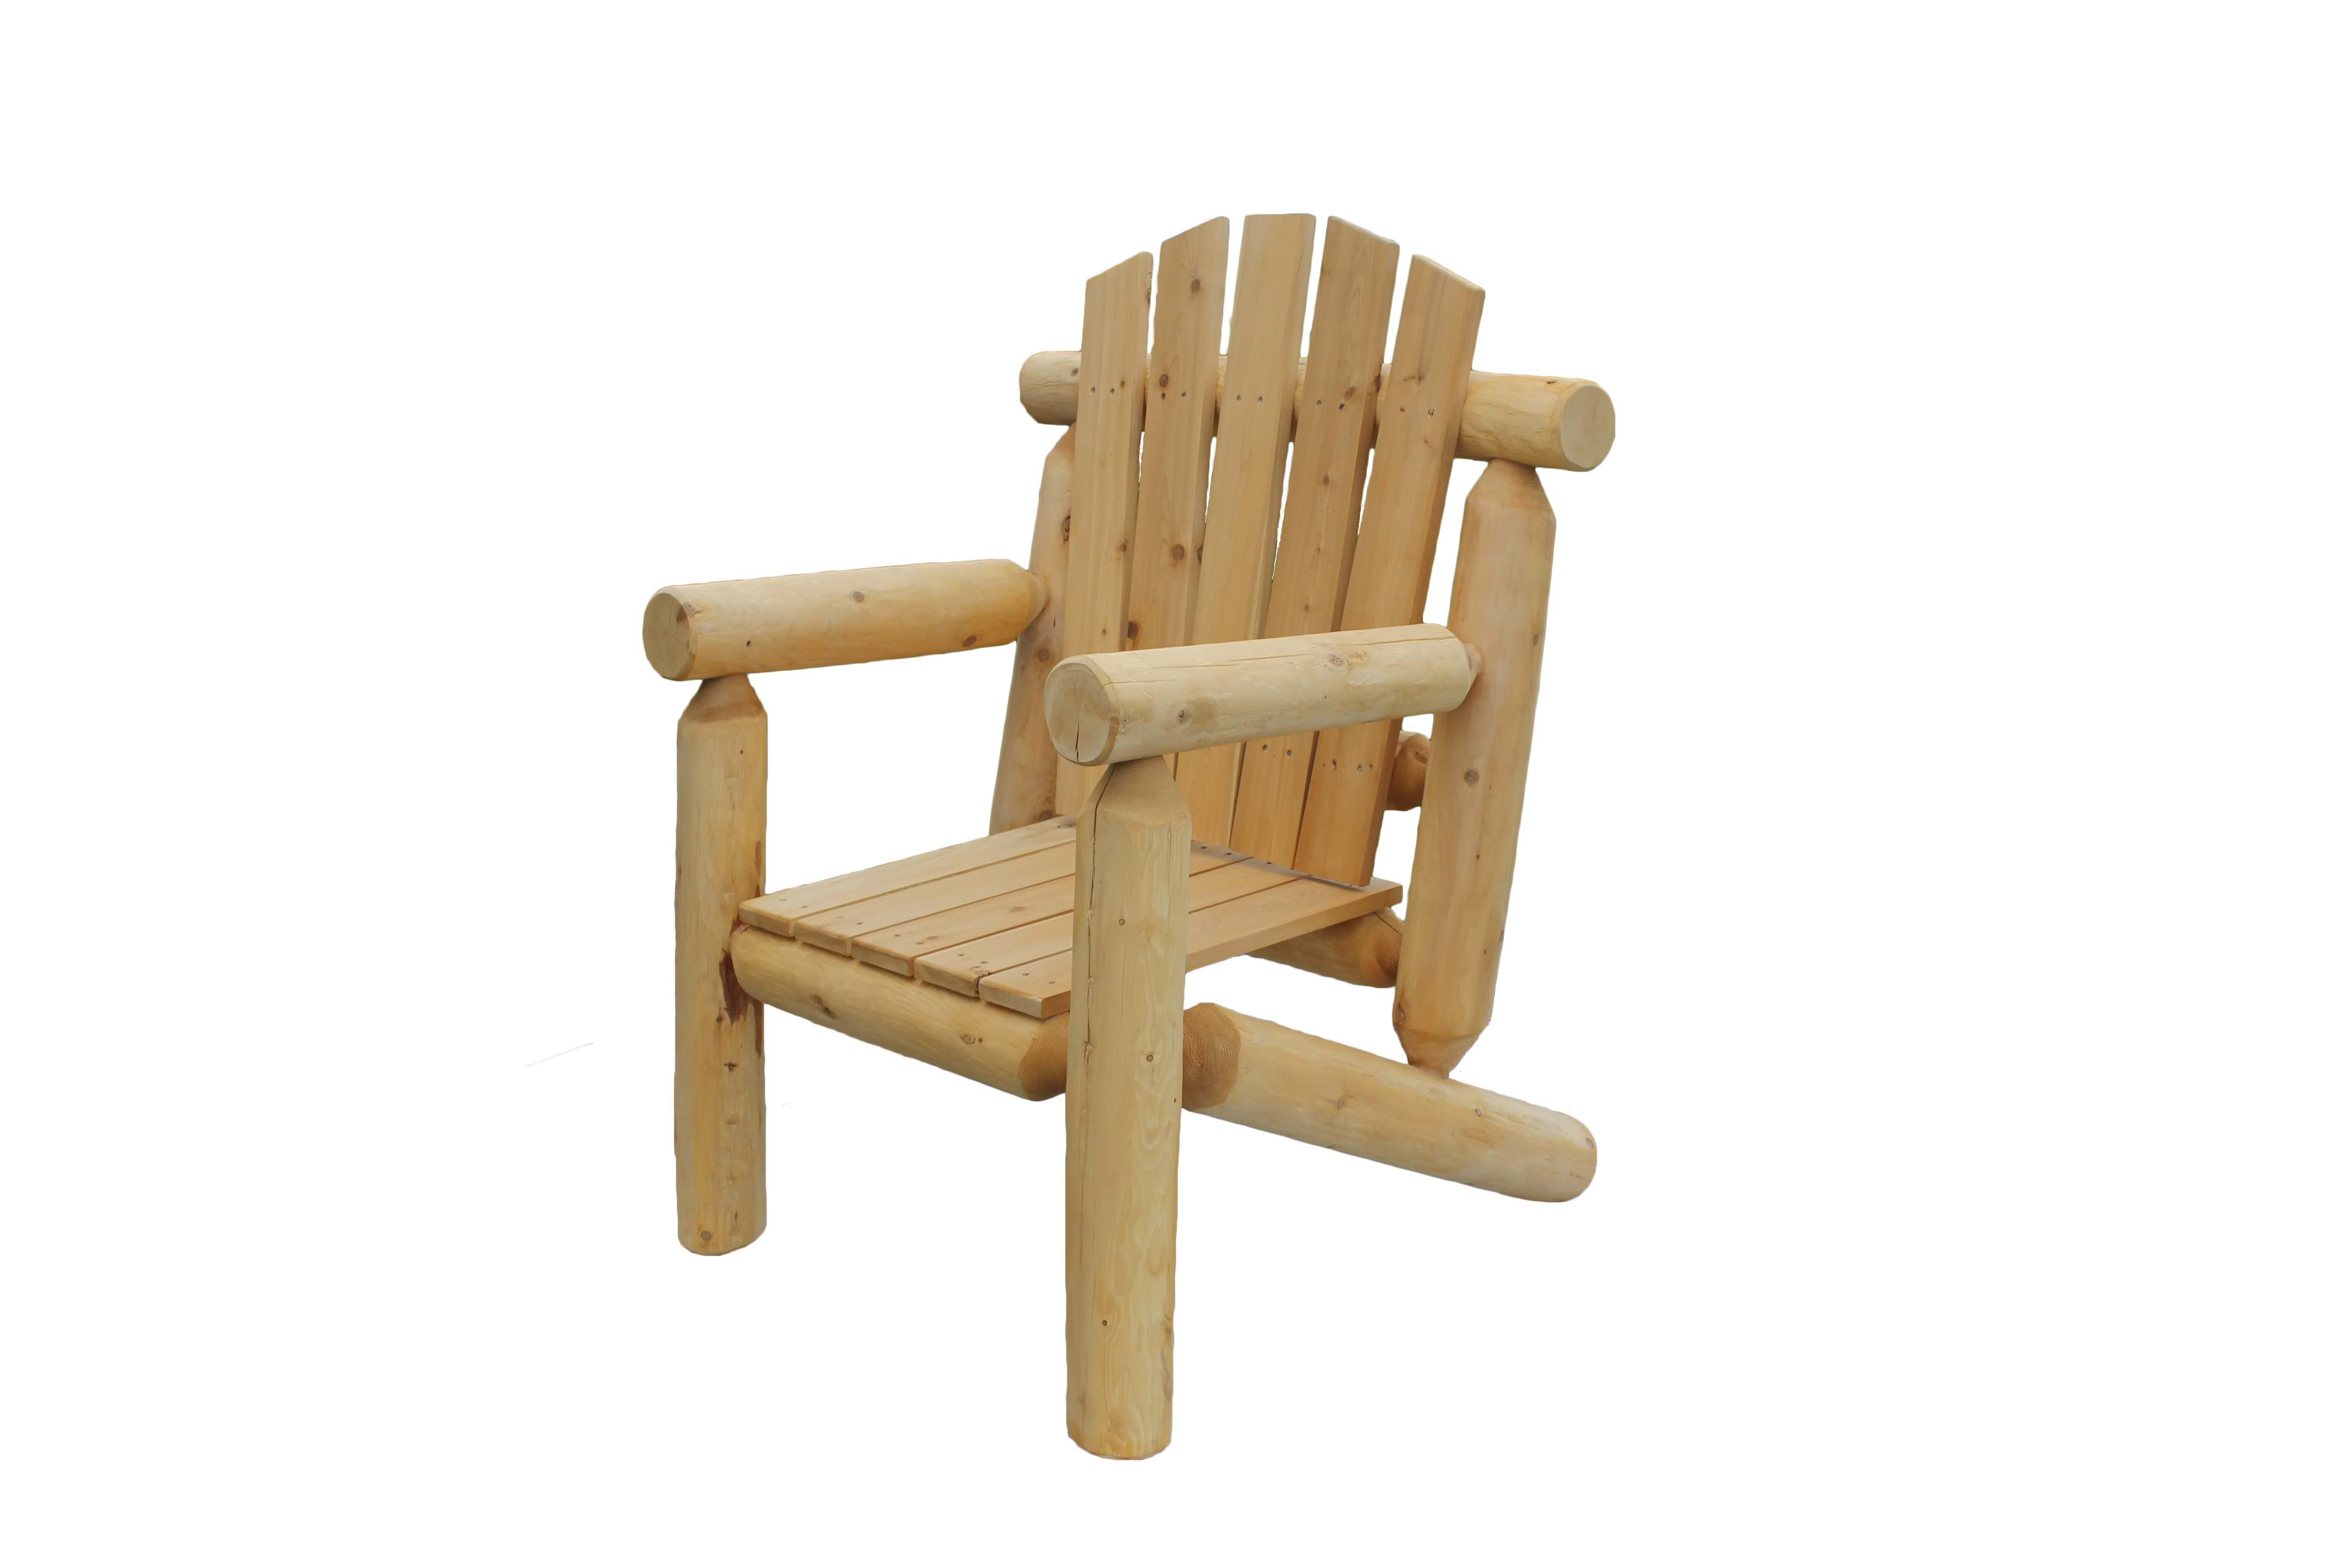 wishing chair photo frame lounge patio wood outdoor furniture and lawn decor  the barn raiser